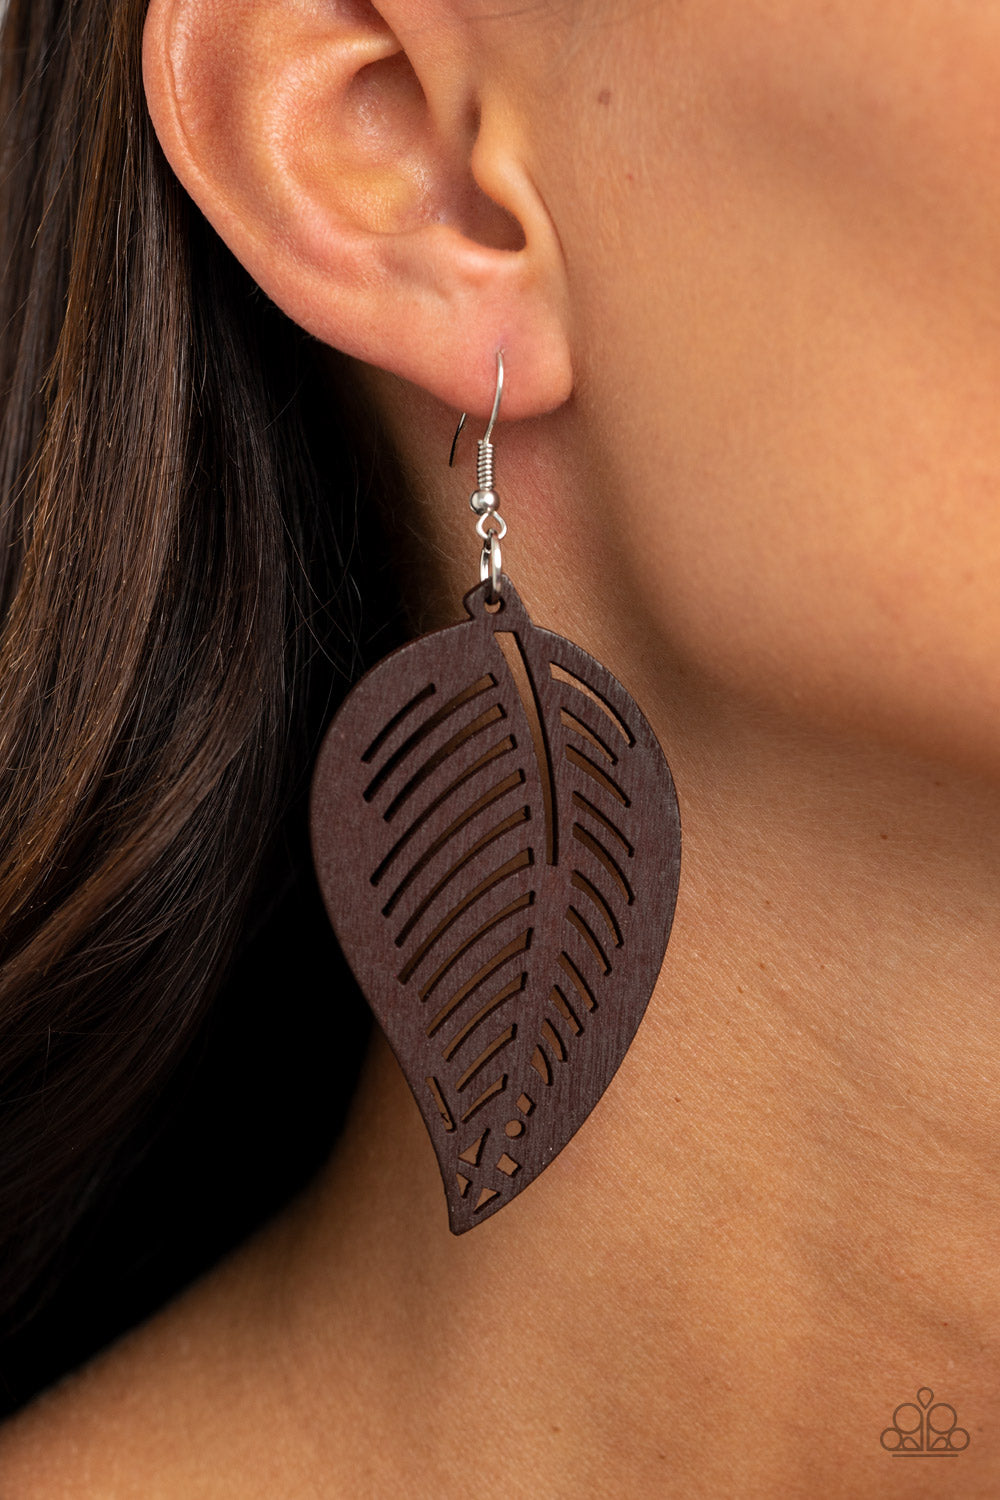 Paparazzi Jewelry & Accessories - Tropical Foliage - Brown Earrings. Bling By Titia Boutique